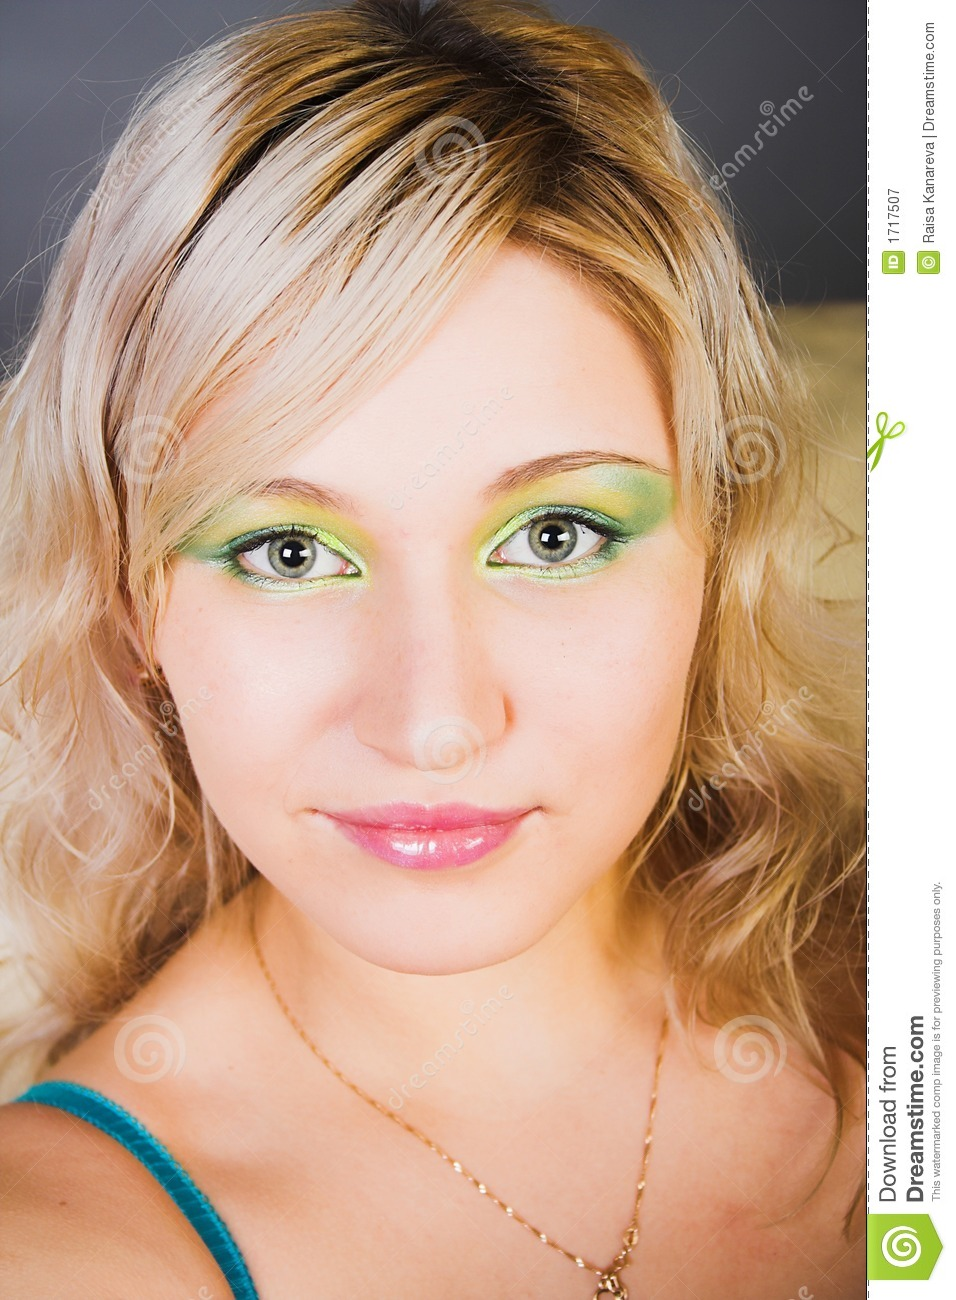 Portrait Of The Blonde With Green Eyes Royalty Free Stock